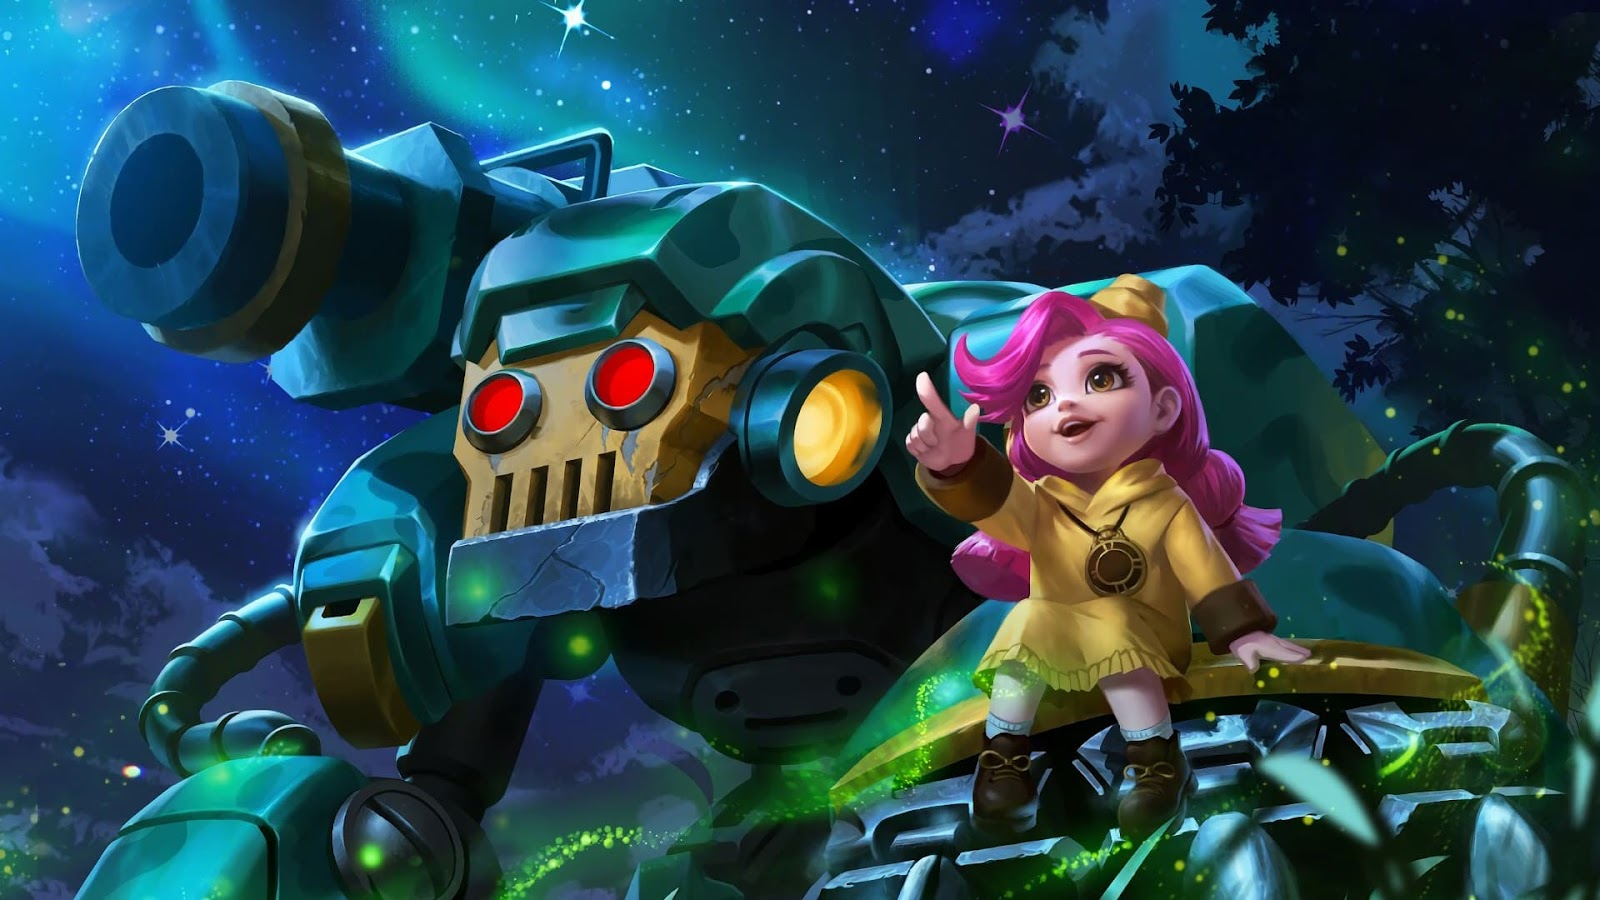 Wallpaper Jawhead Girl Scout Skin Mobile Legends HD for PC